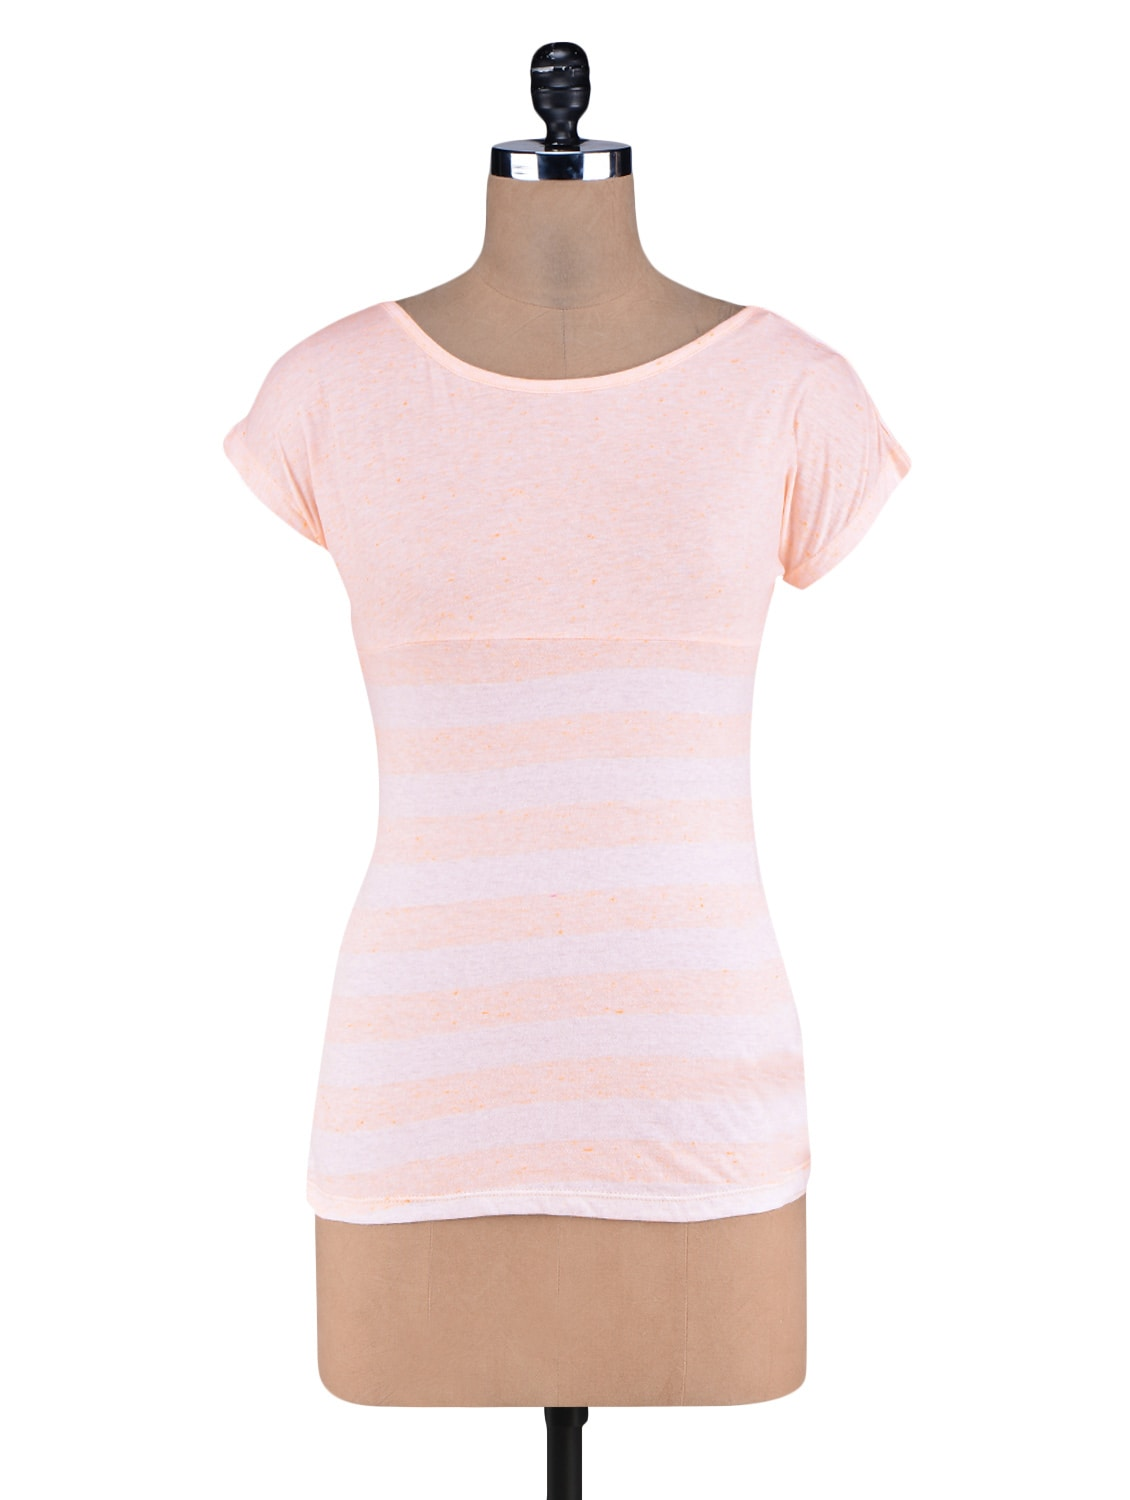 Pink Yarn Dyed Stripes Knitted Cotton Top - By